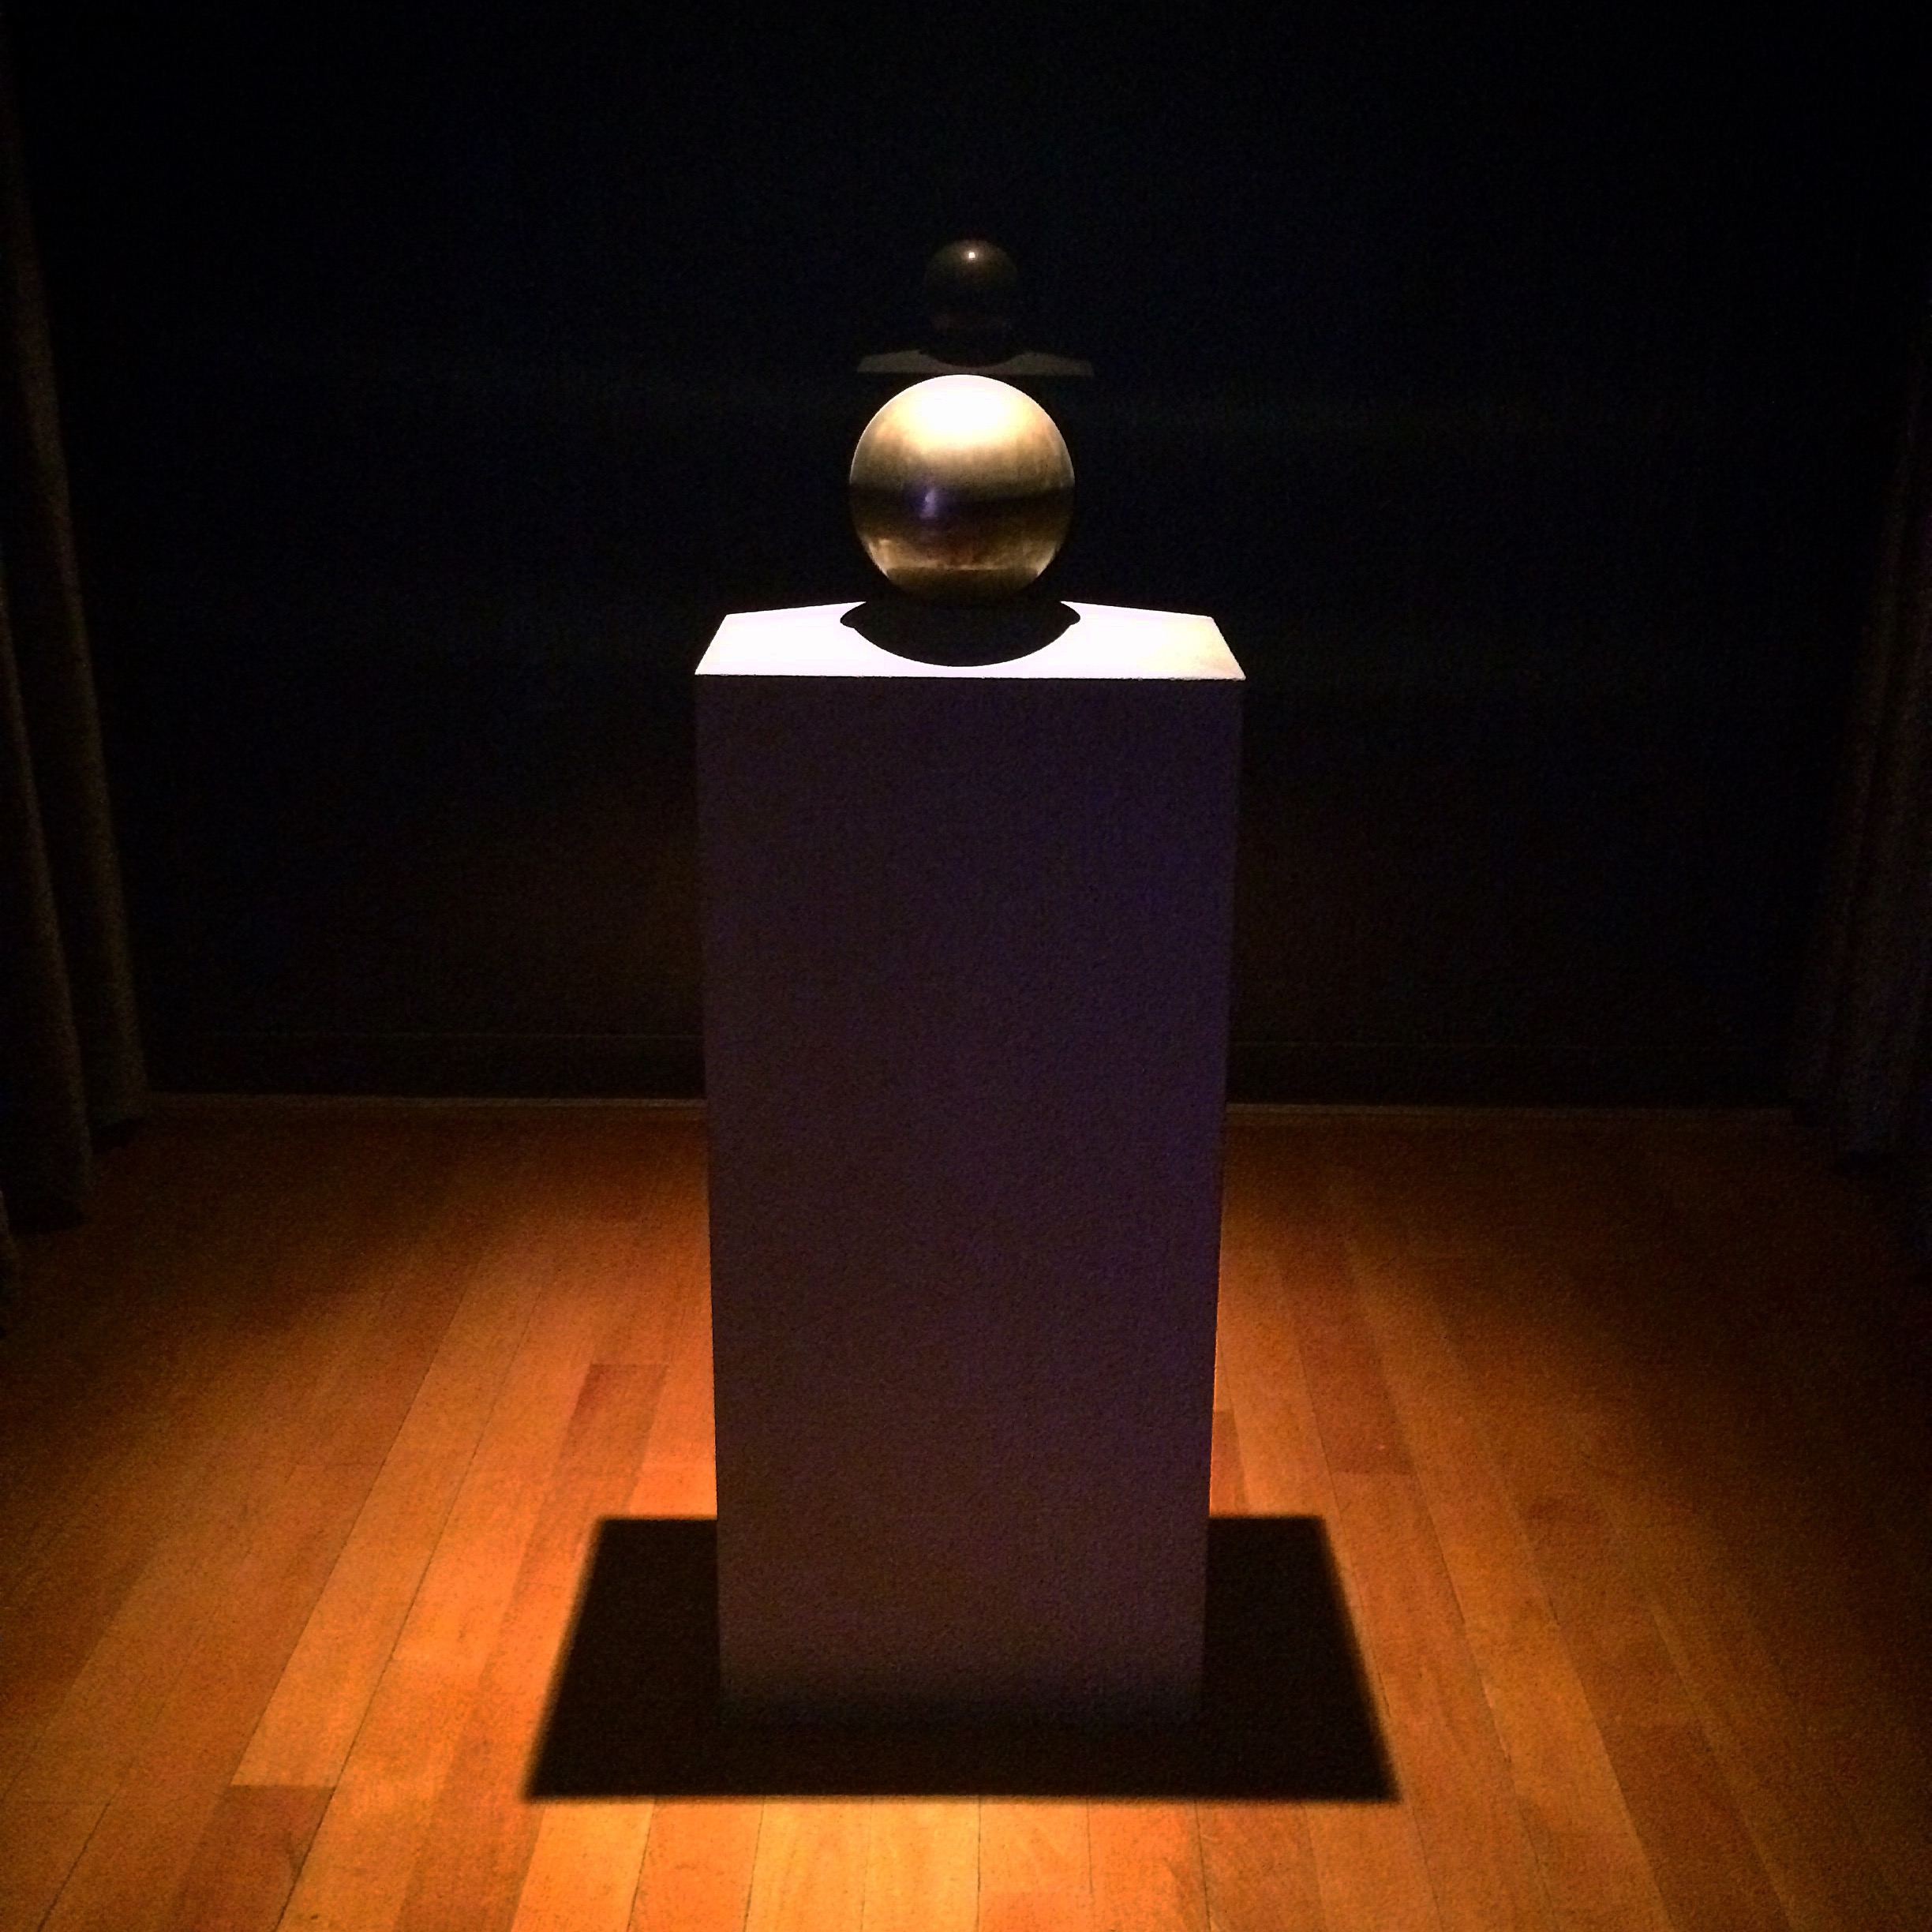 The ashes of Nicola Tesla on display in the back of the museum.